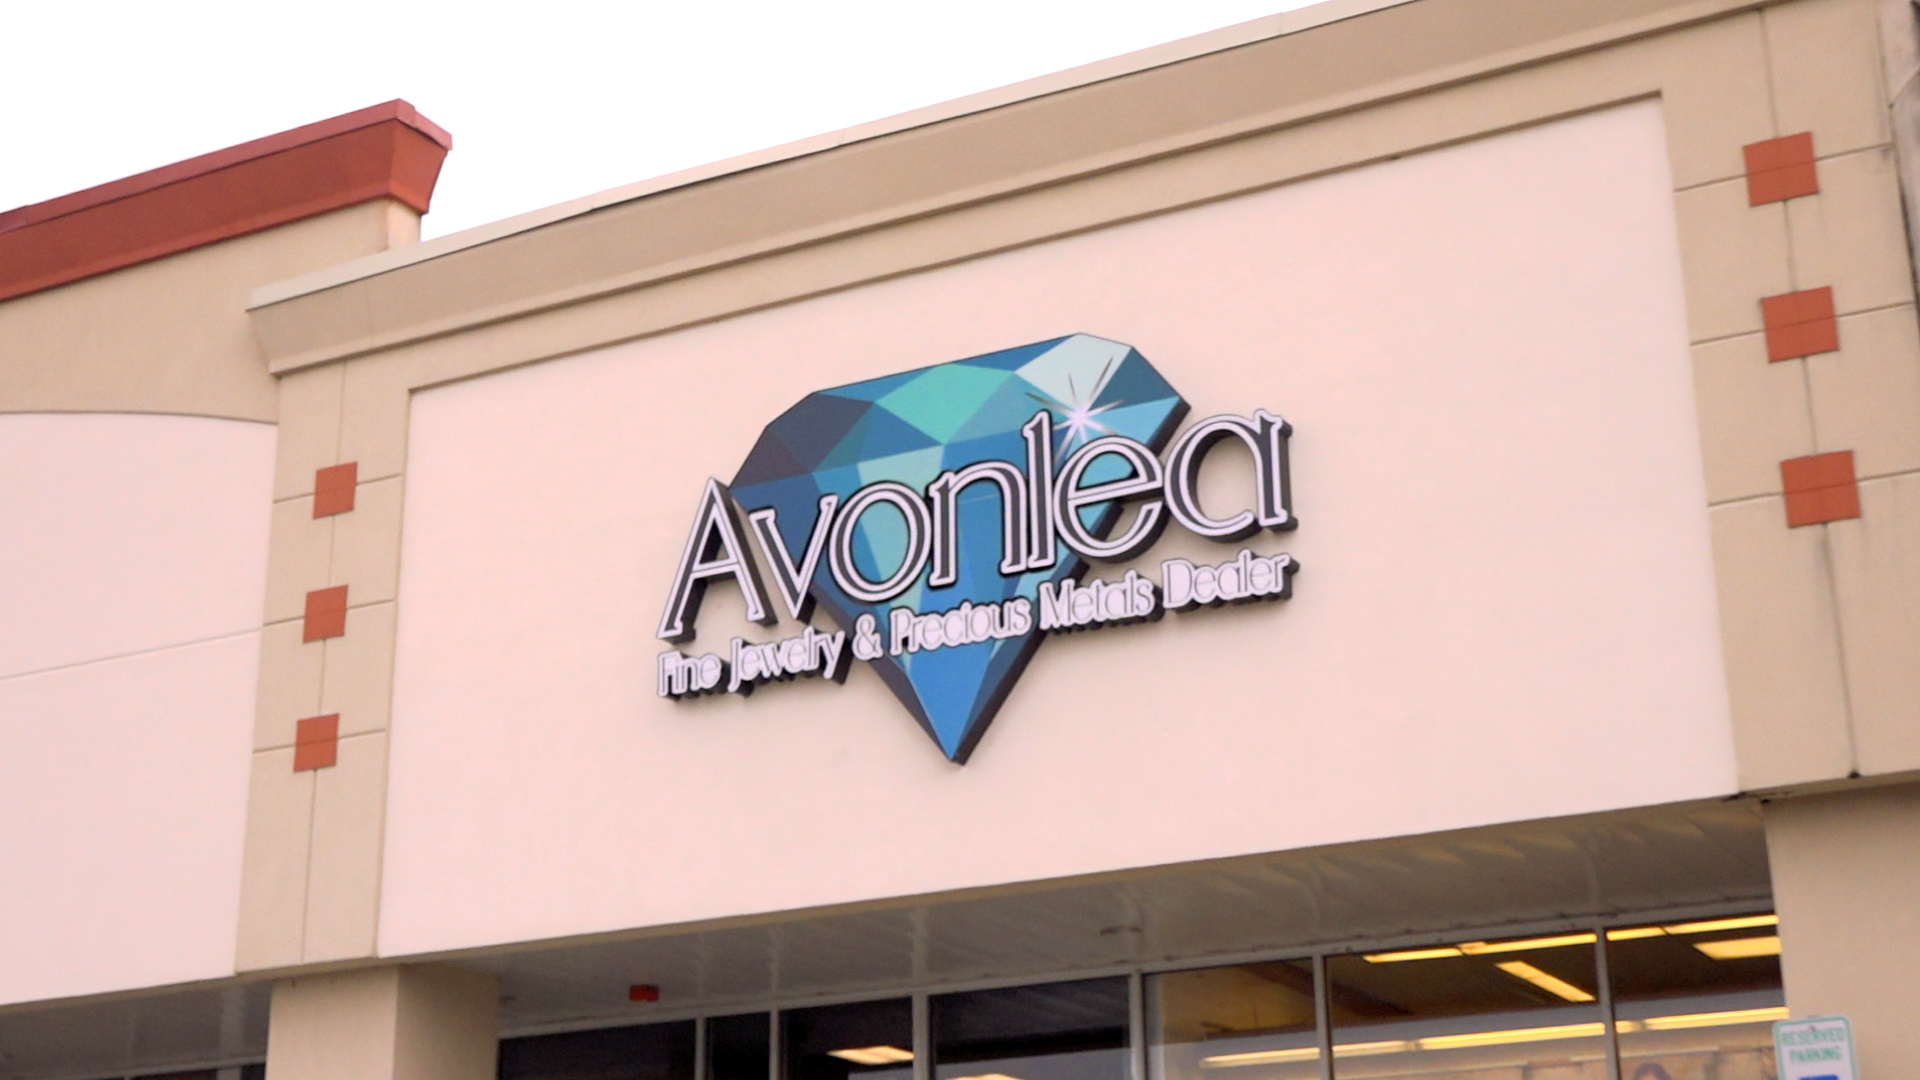 Avonlea storefront located at 84 N LHS Drive in Lumberton